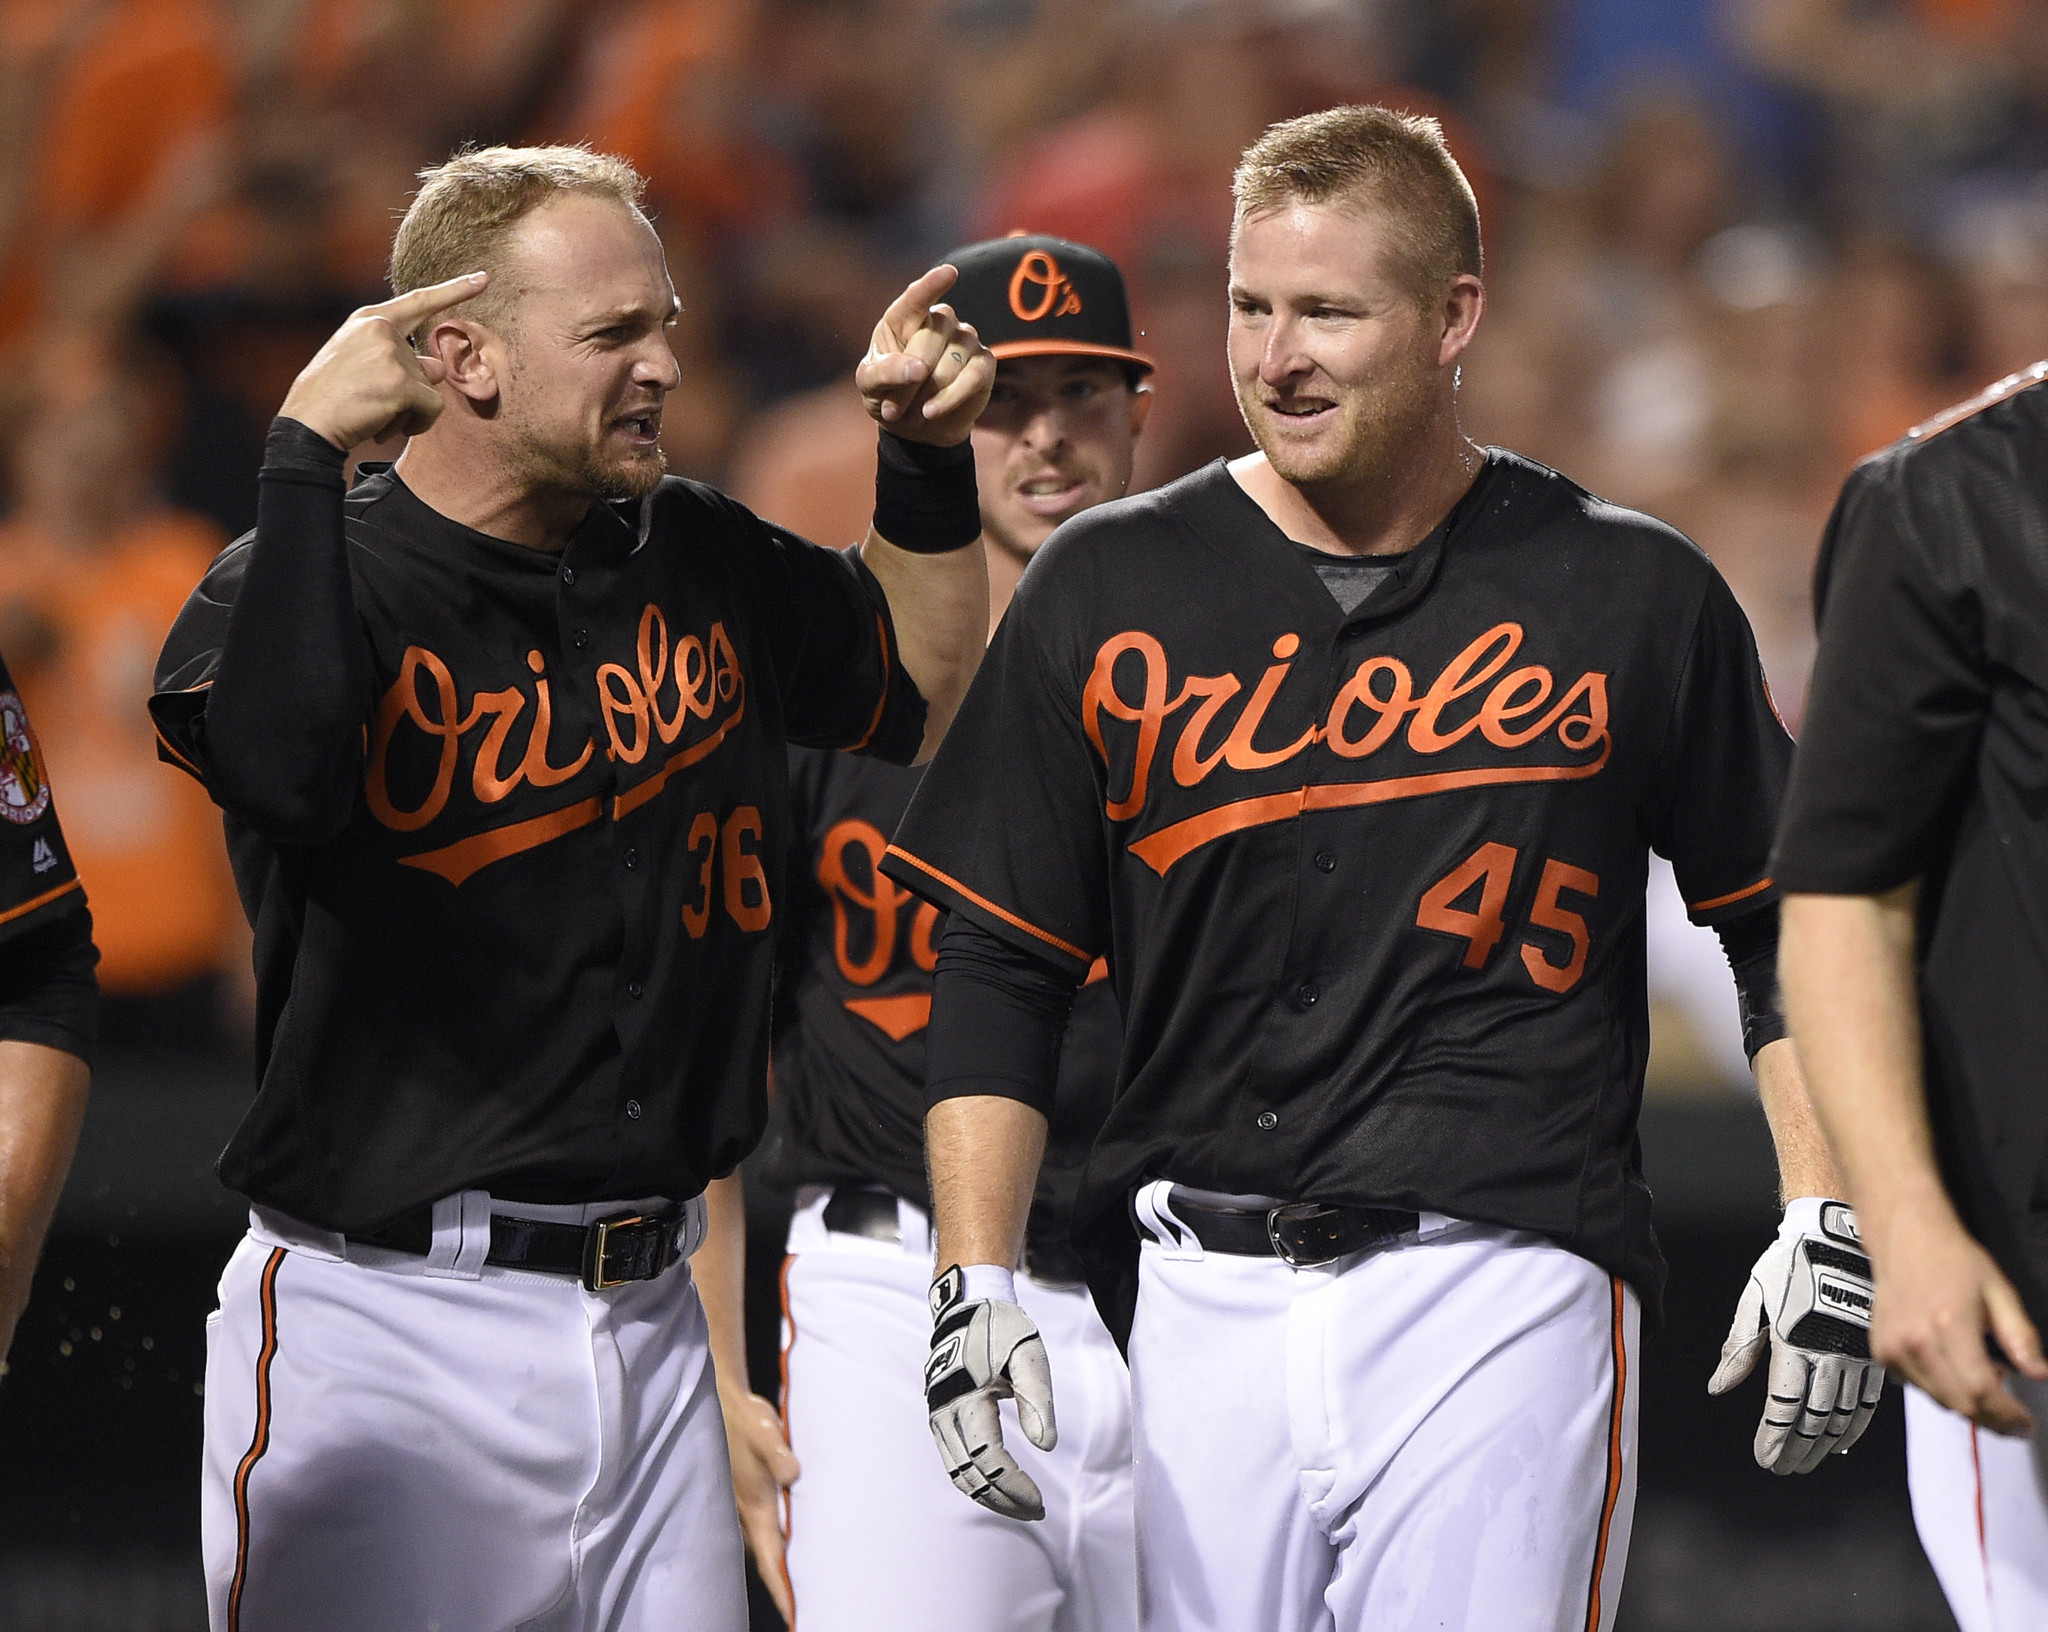 Bal-examining-all-the-fallout-from-mark-trumbo-s-return-to-the-orioles-20170119